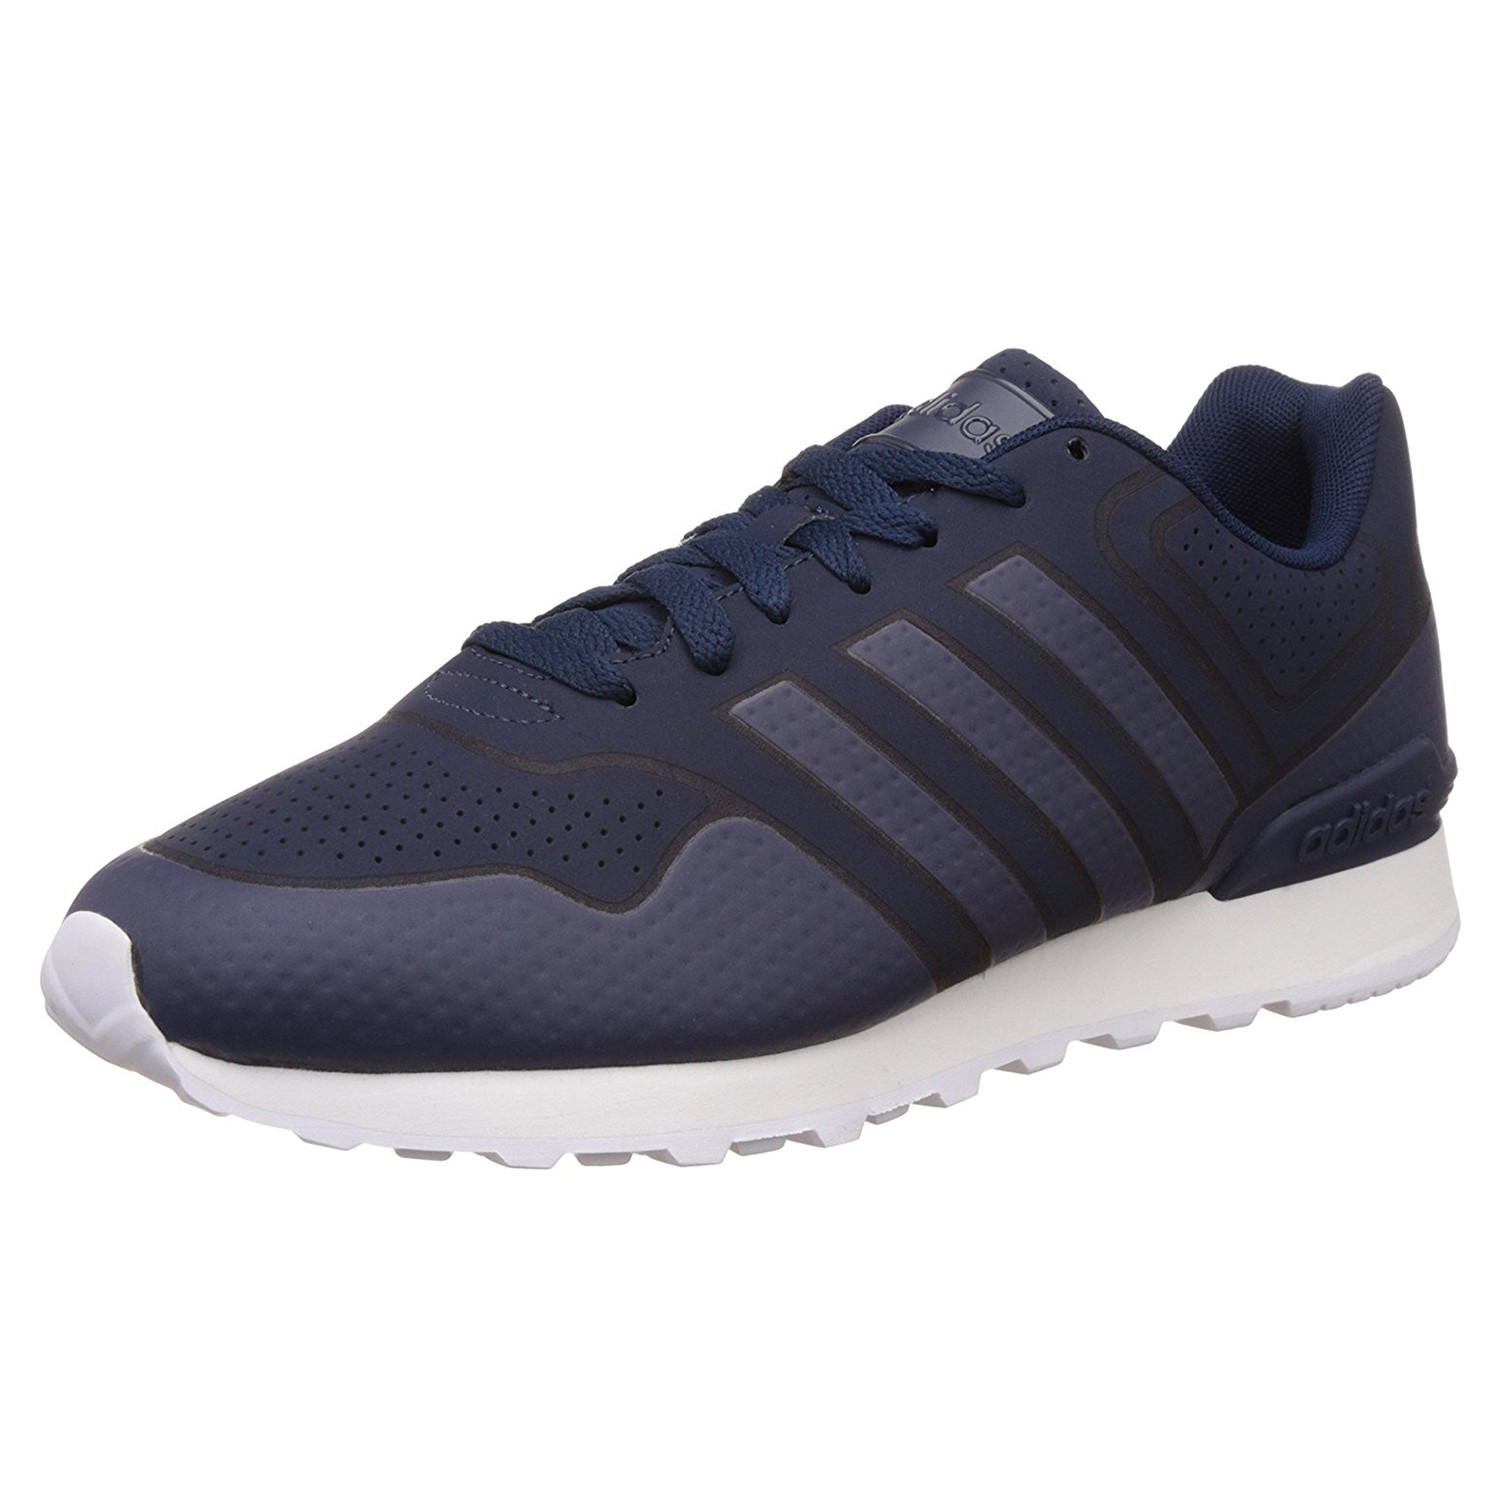 ADIDAS 10K Casual Chaussure Homme